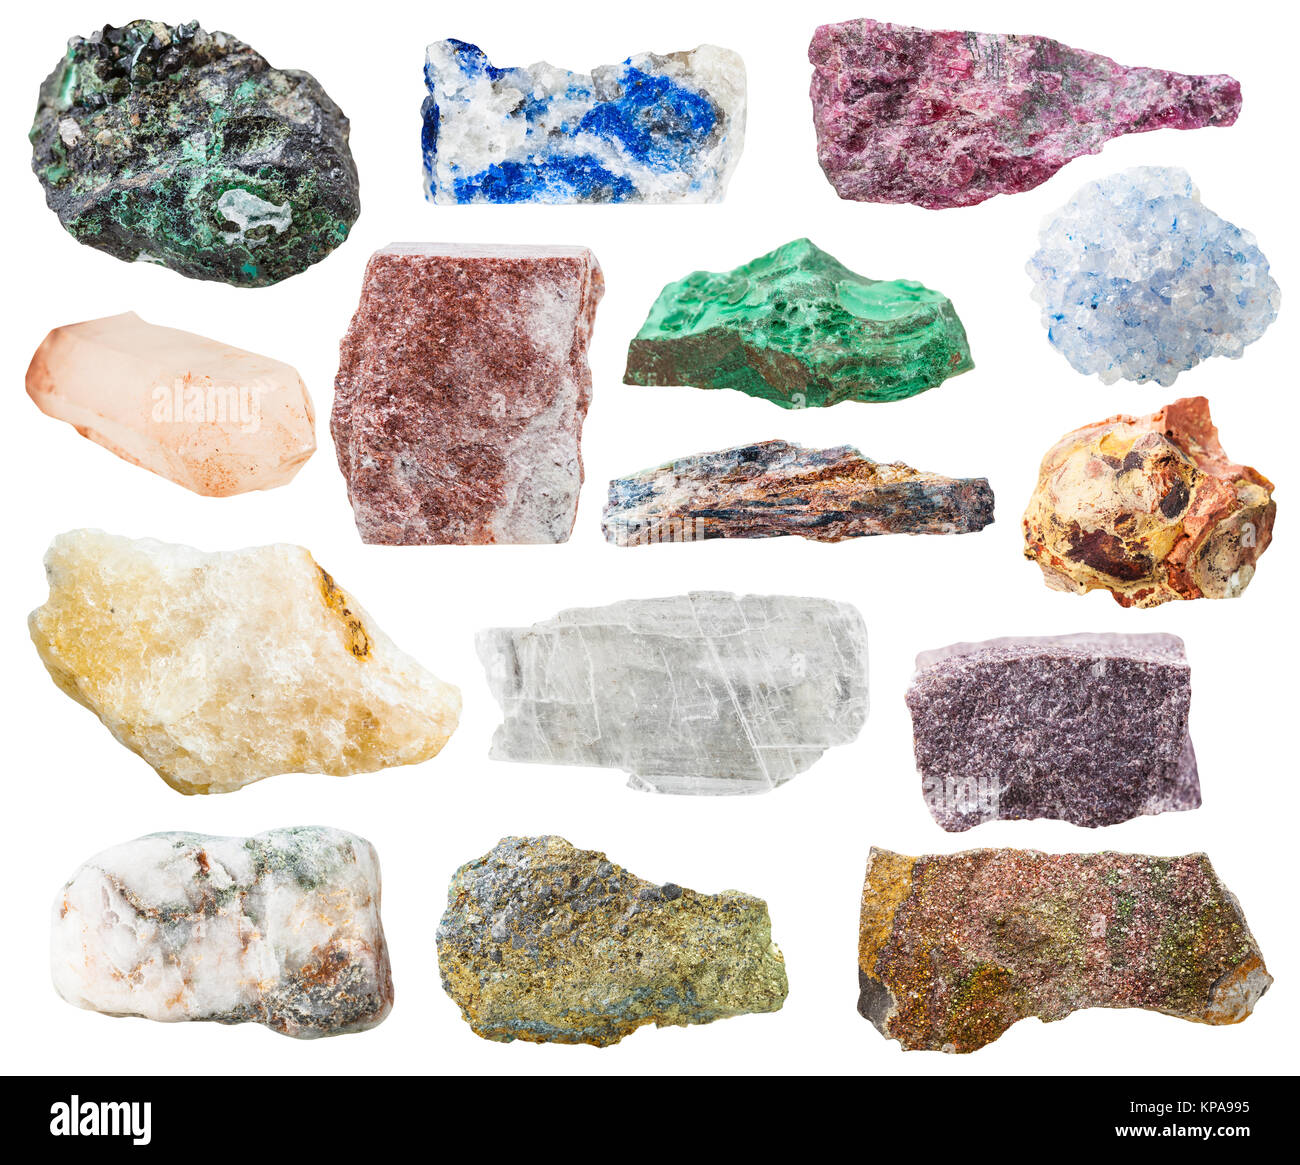 many natural rocks and stones isolated on white - Stock Image